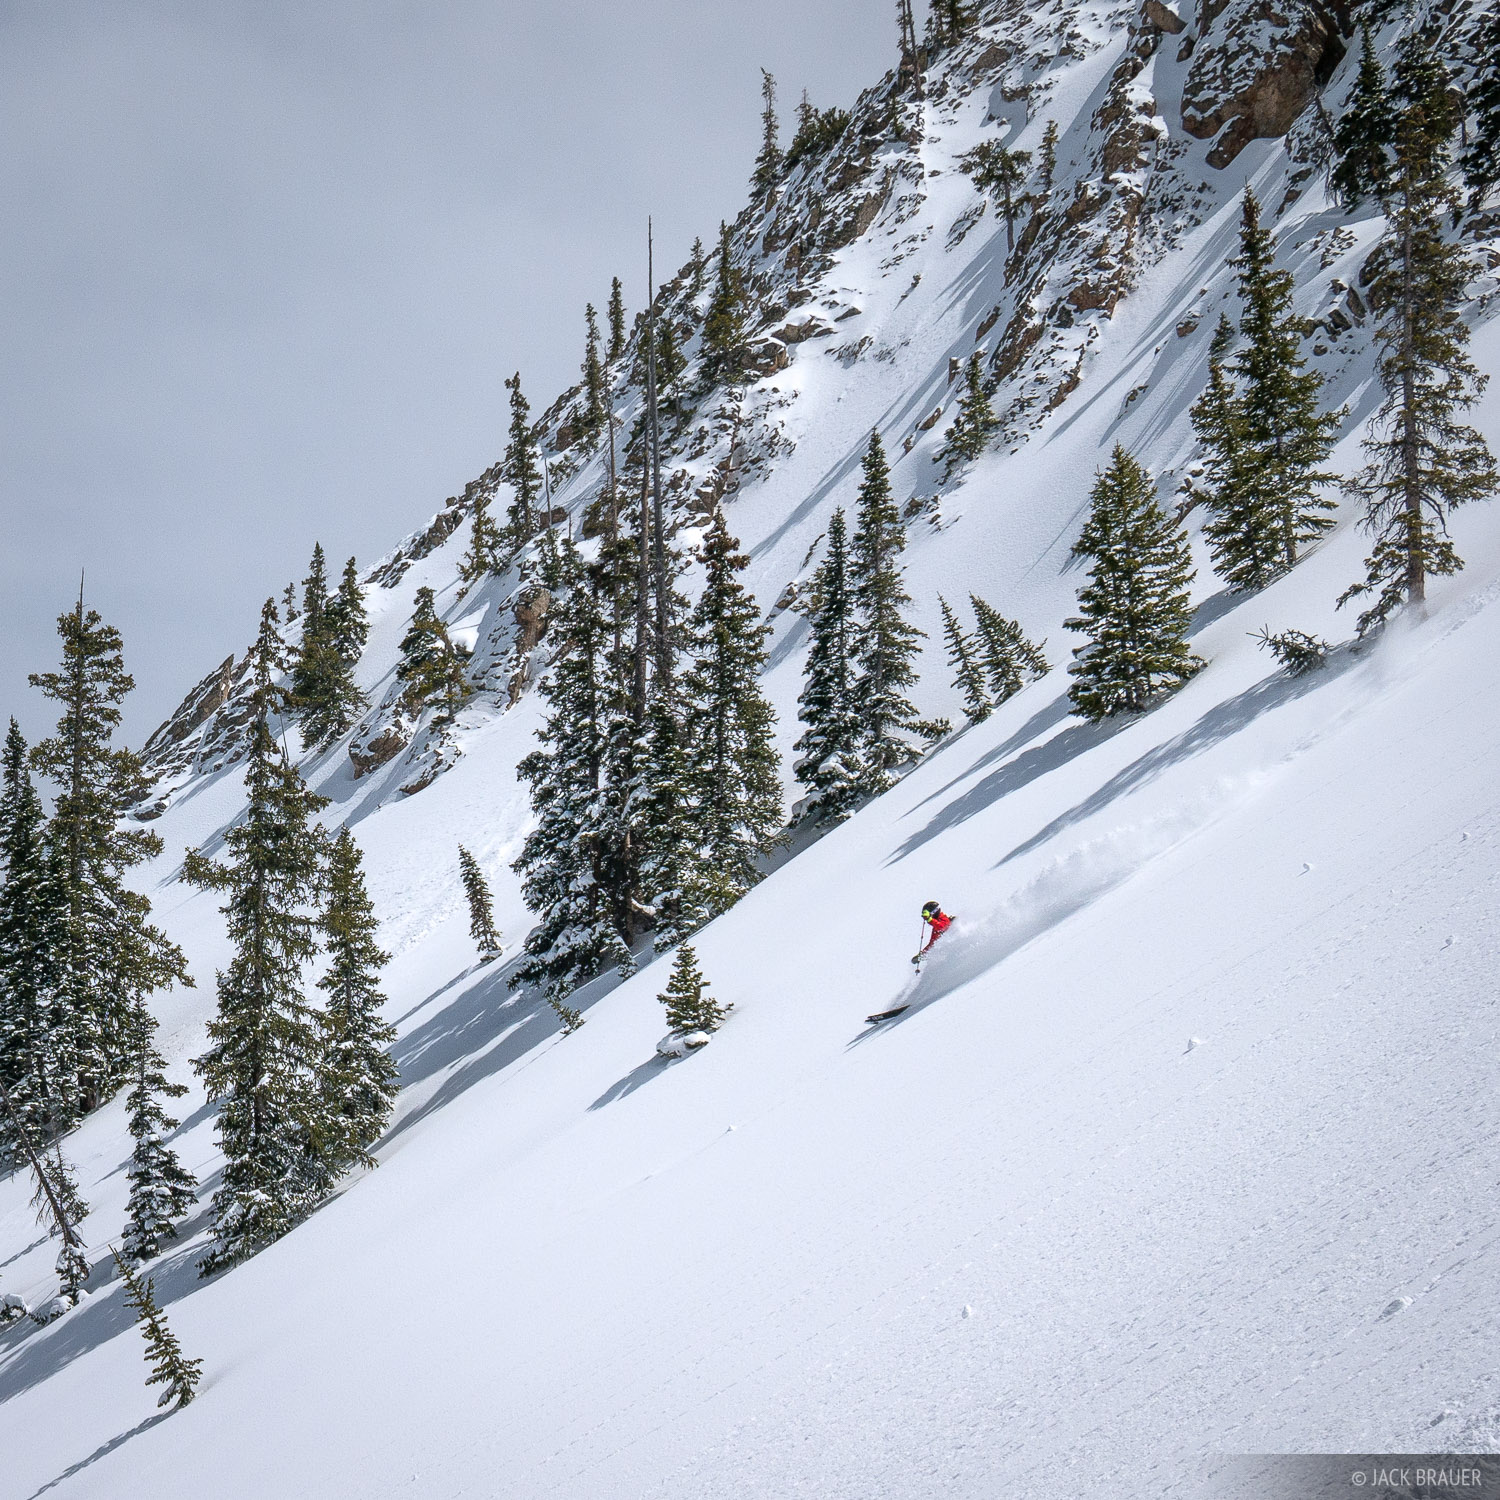 Paul DiG skis Third Bowl on Mt. Crested Butte in late April after the lifts have closed.